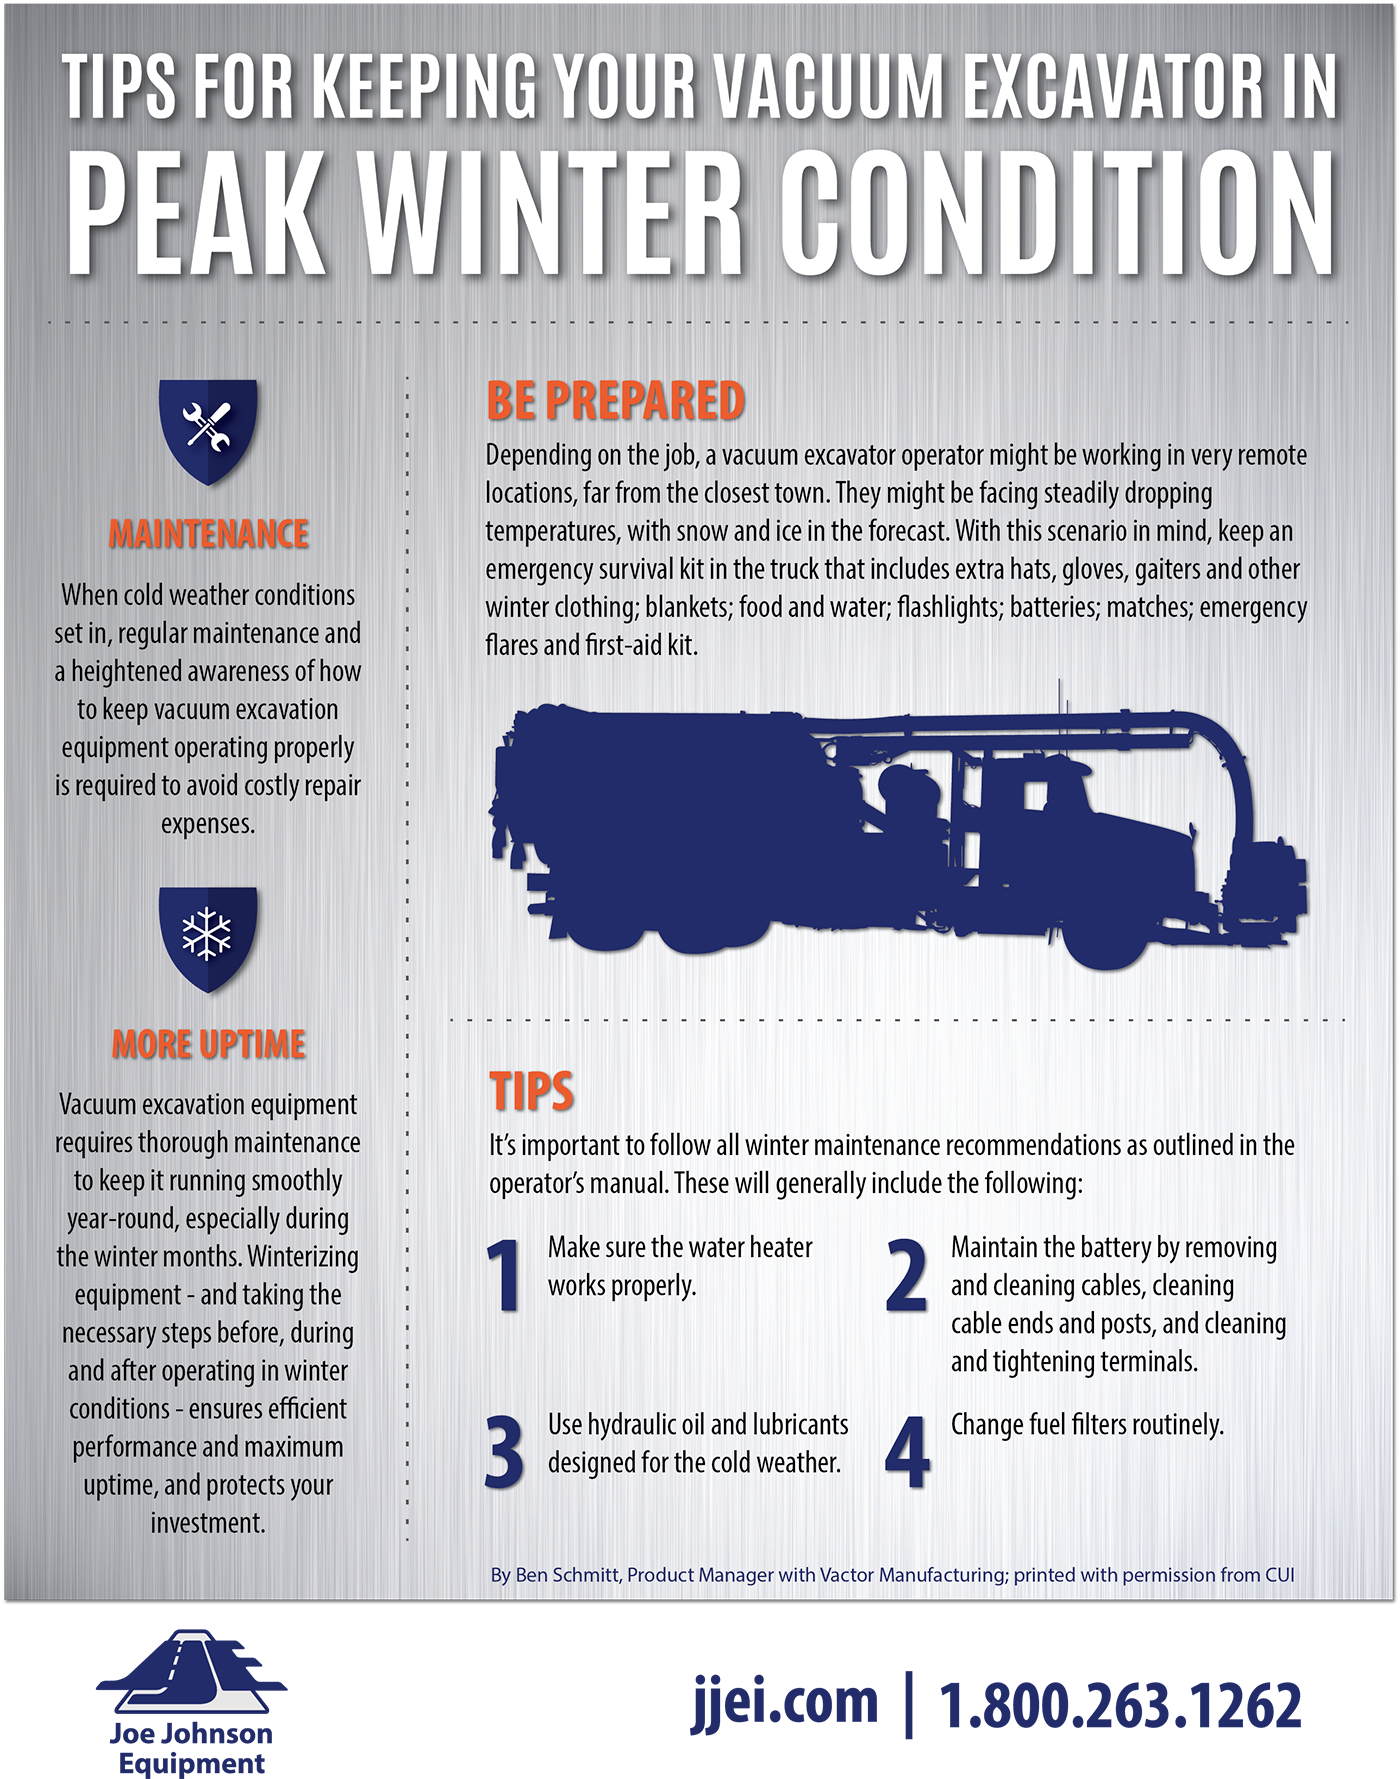 Keep Vacuum Excavator In Peak Winter Condition Infographic